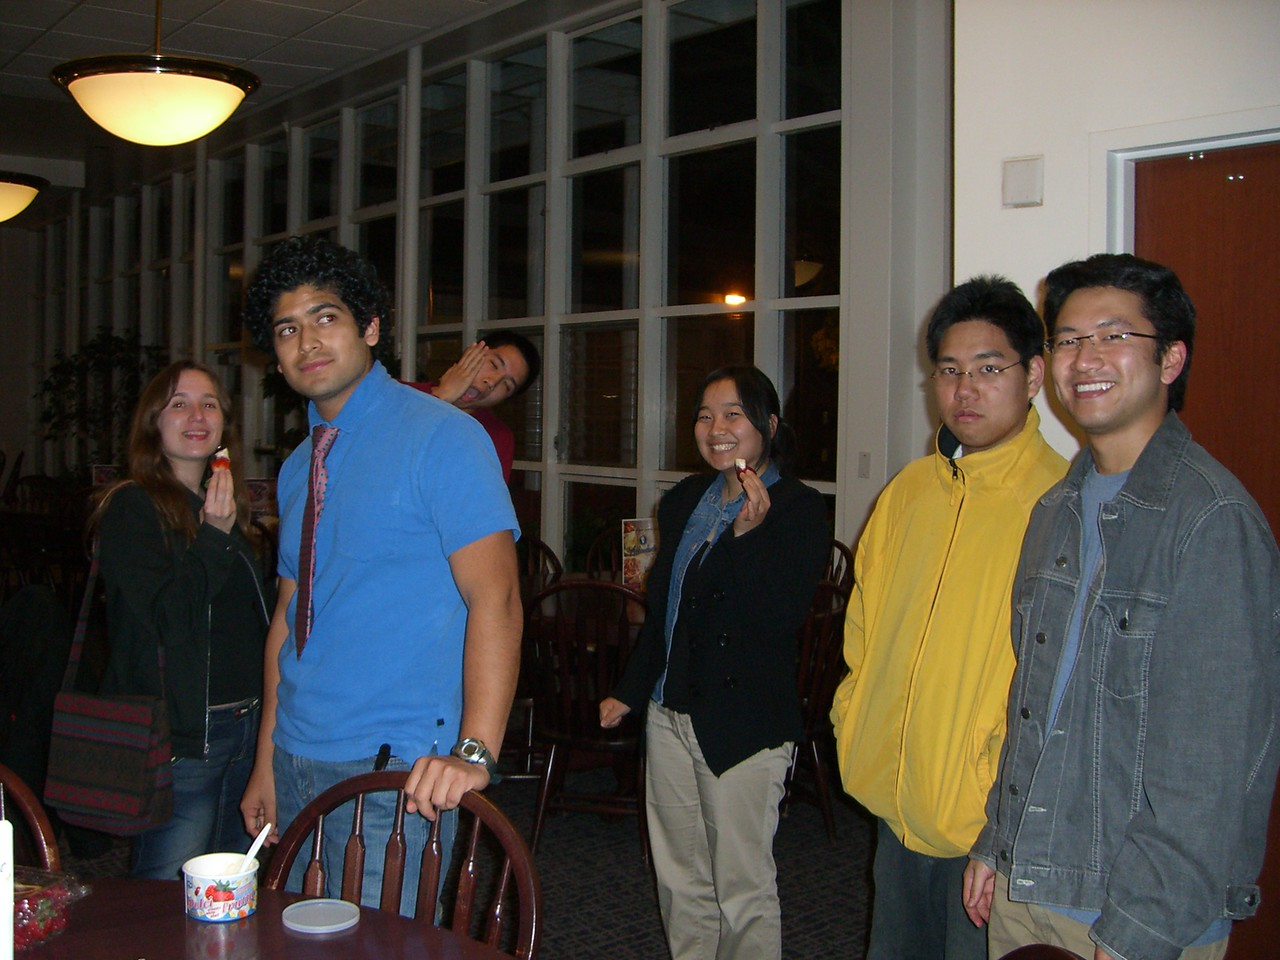 2006 02 13 Mon - Jenna Sloat, Pablo Pozo, Michael Lin, Esther Kang, David Chiang, & Bryan Lung